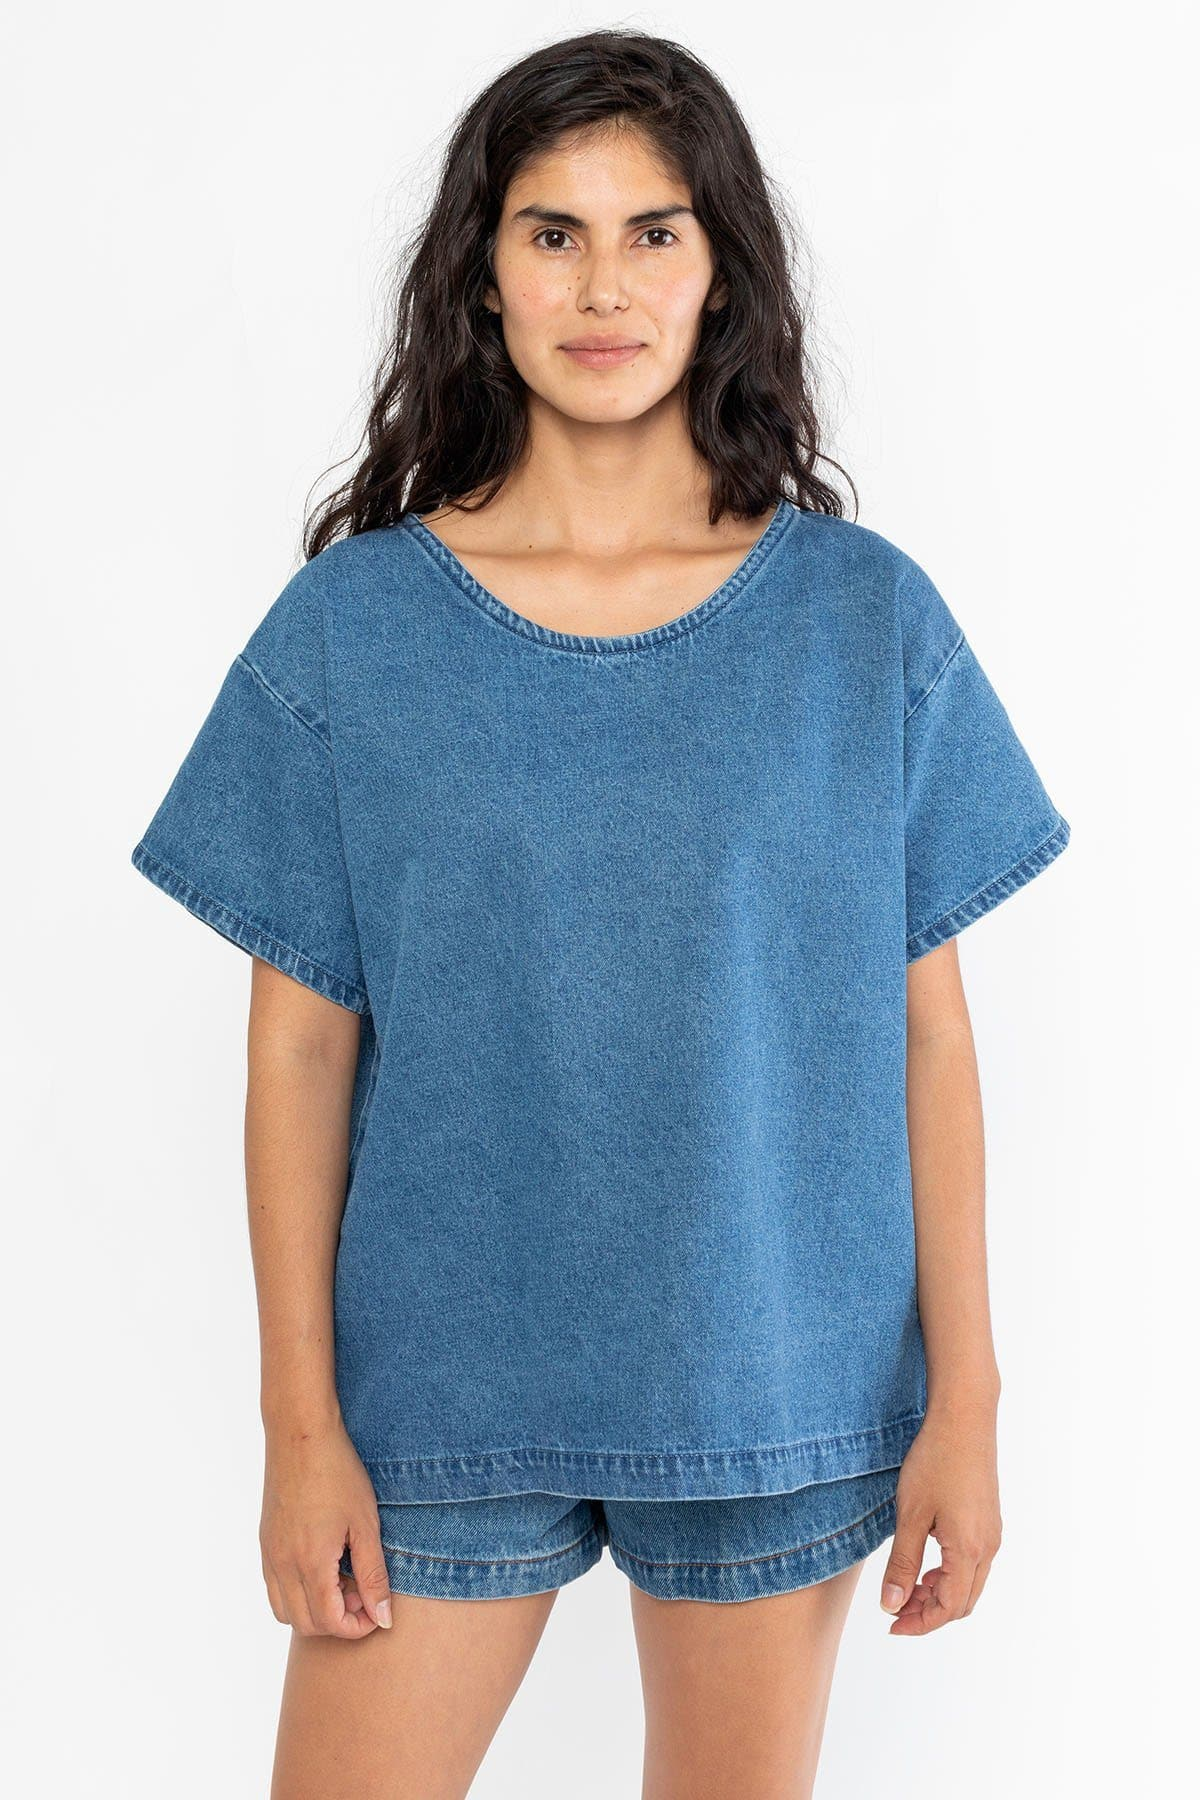 RDNT340 - The Denim T-Shirt